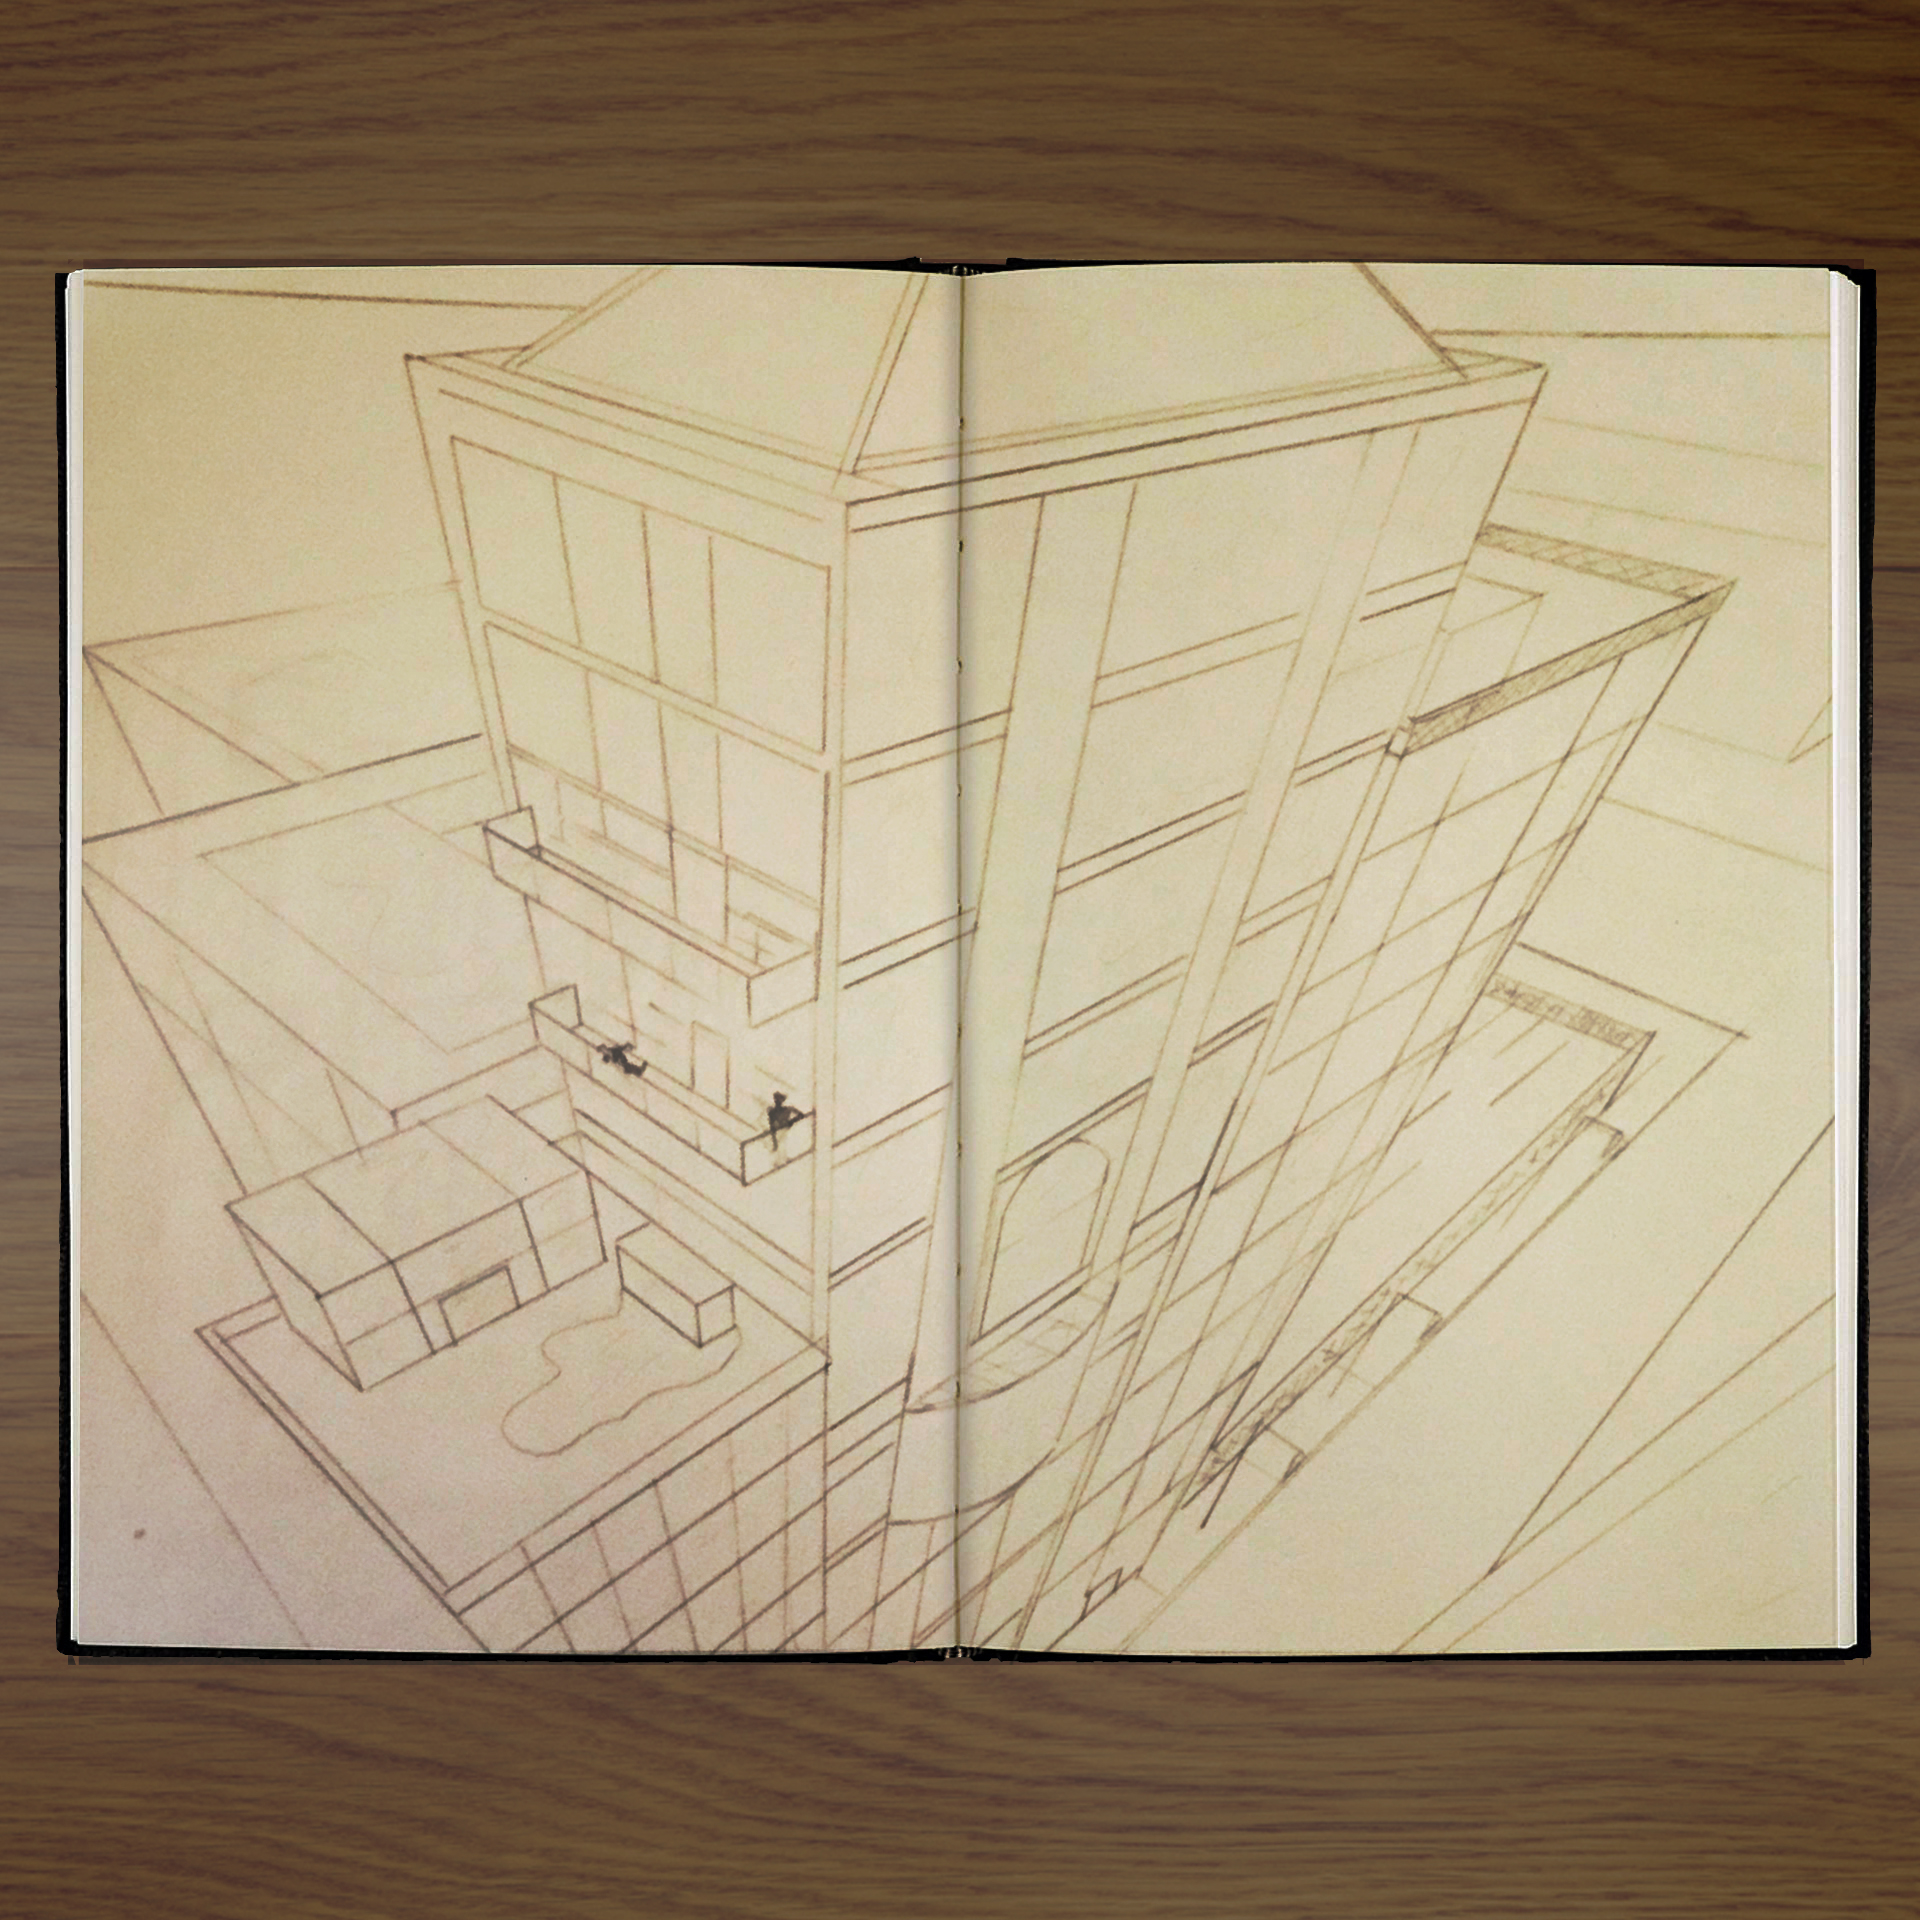 Perspective Drawing - Pencil